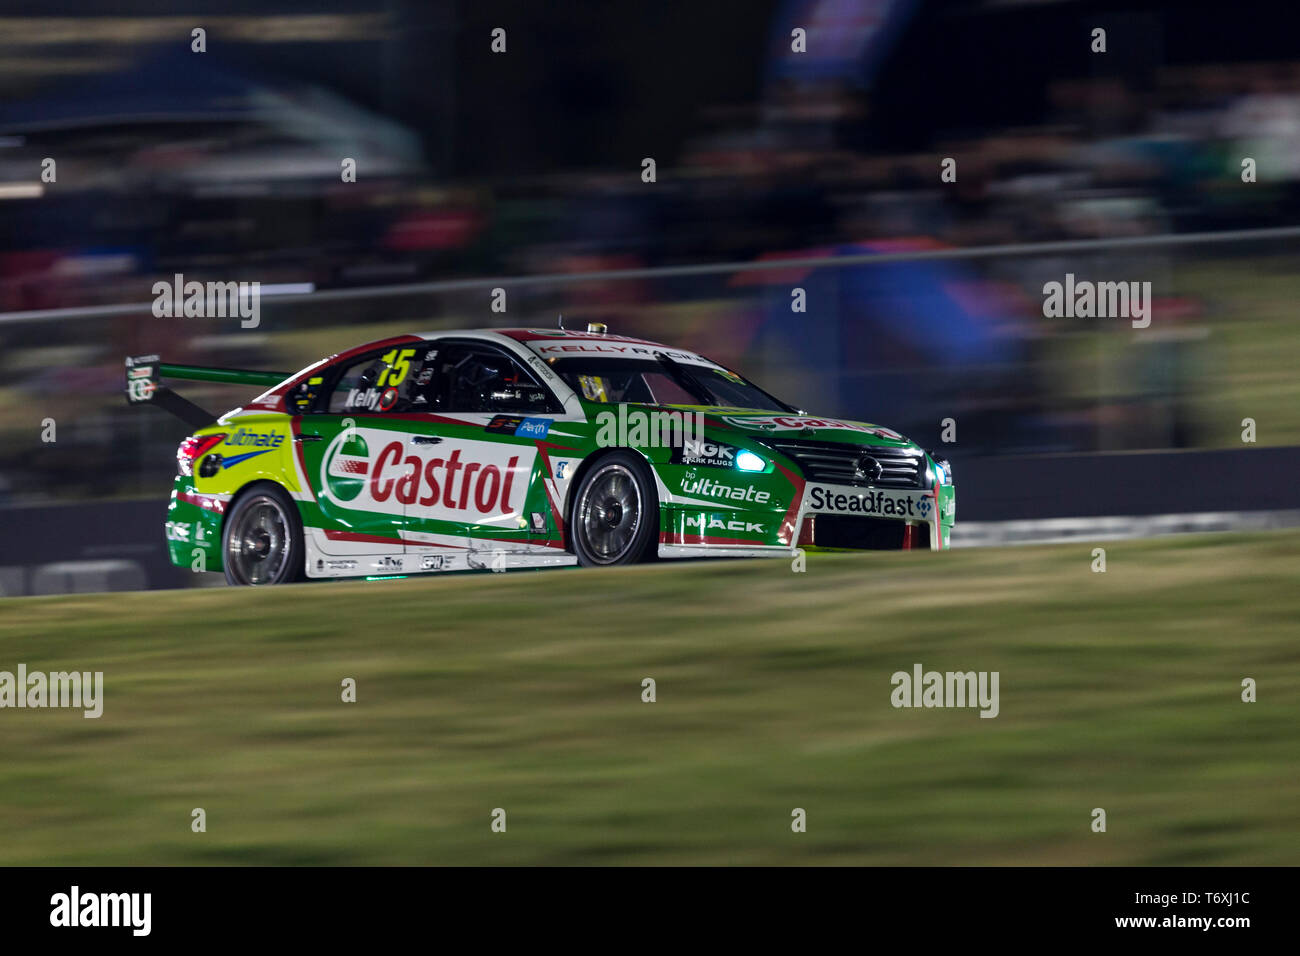 Barbagallo Raceway, Neerabup, Australia. 3rd May, 2019. Virgin Australia Supercars Championship, PIRTEK Perth SuperNight, day 2; Number 15 Castrol Racing Nissan Altima driven by Rick Kelly during Race 11 Credit: Action Plus Sports/Alamy Live News Stock Photo